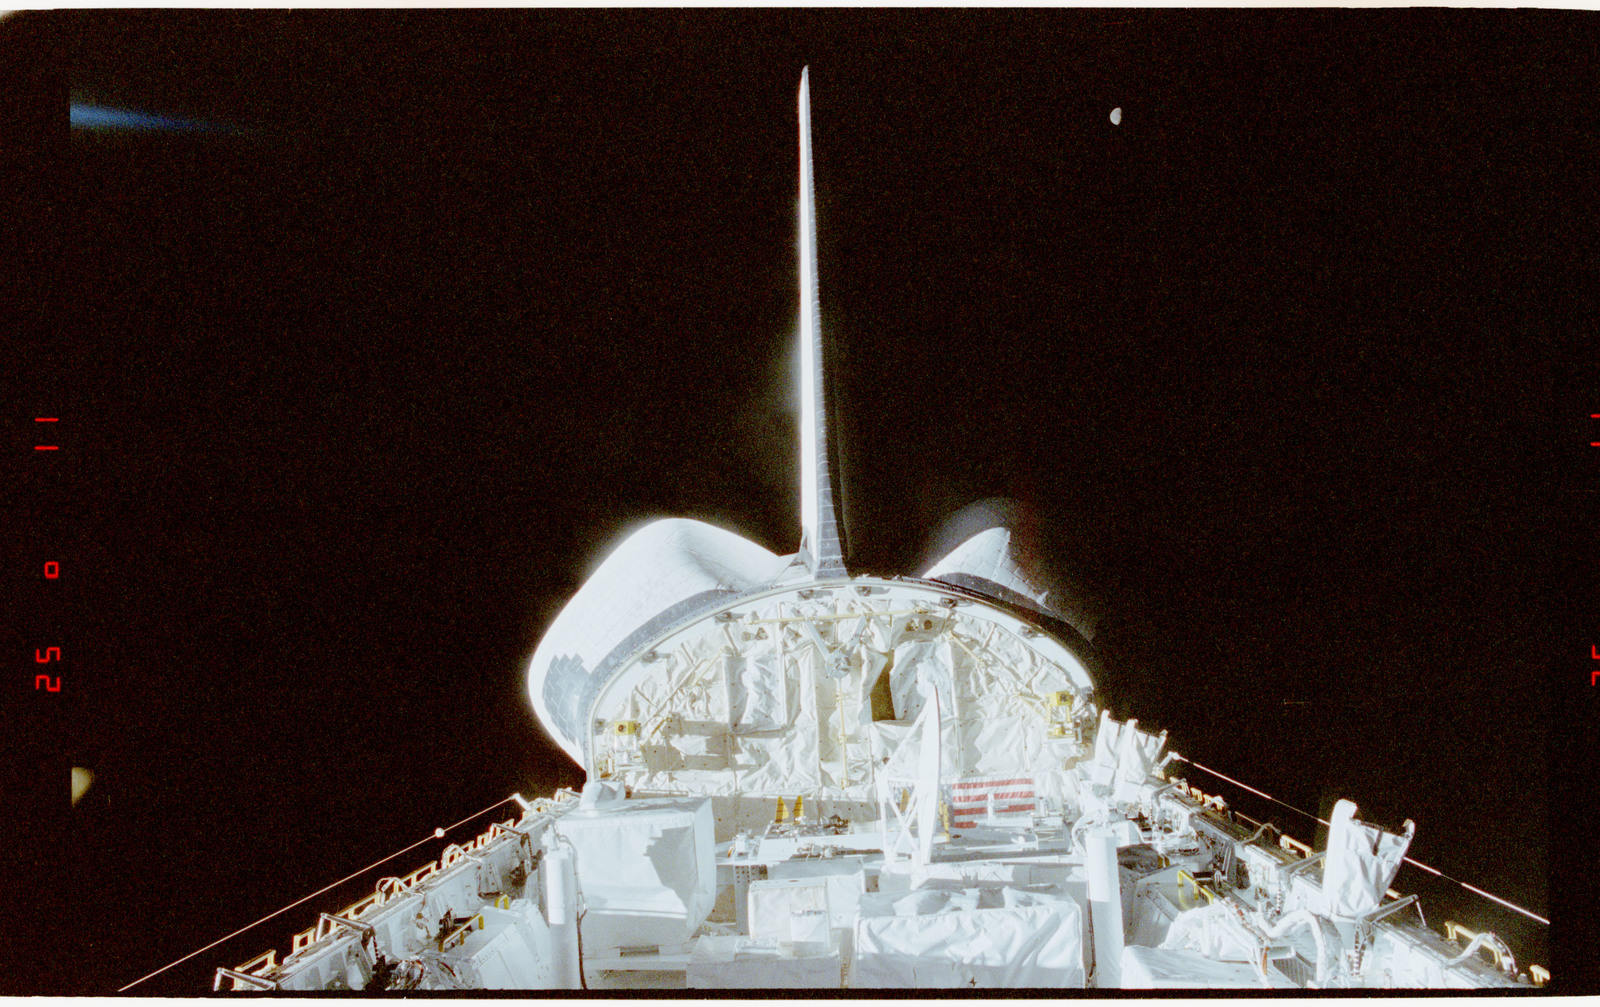 STS056-28-036 - STS-056 - Views of the payload bay, Earth limb with day/night terminator, and moon.